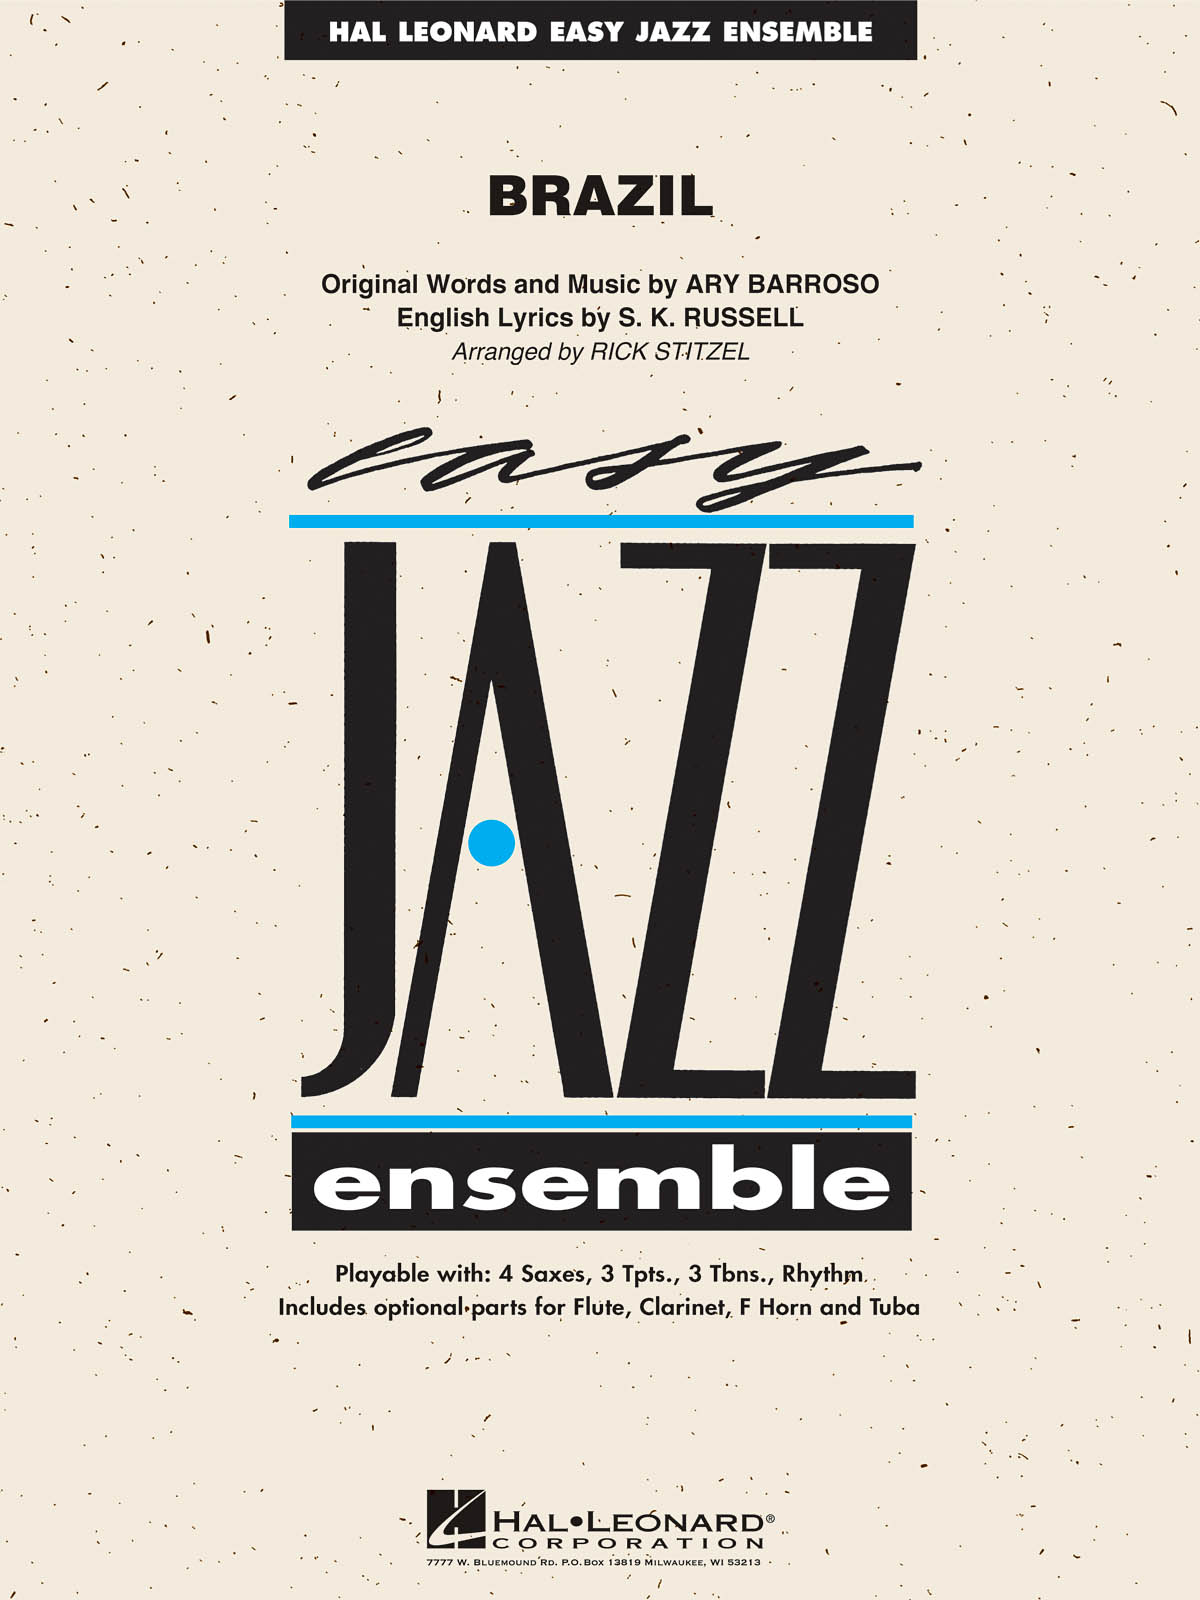 Brazil: Easy Jazz Ensemble